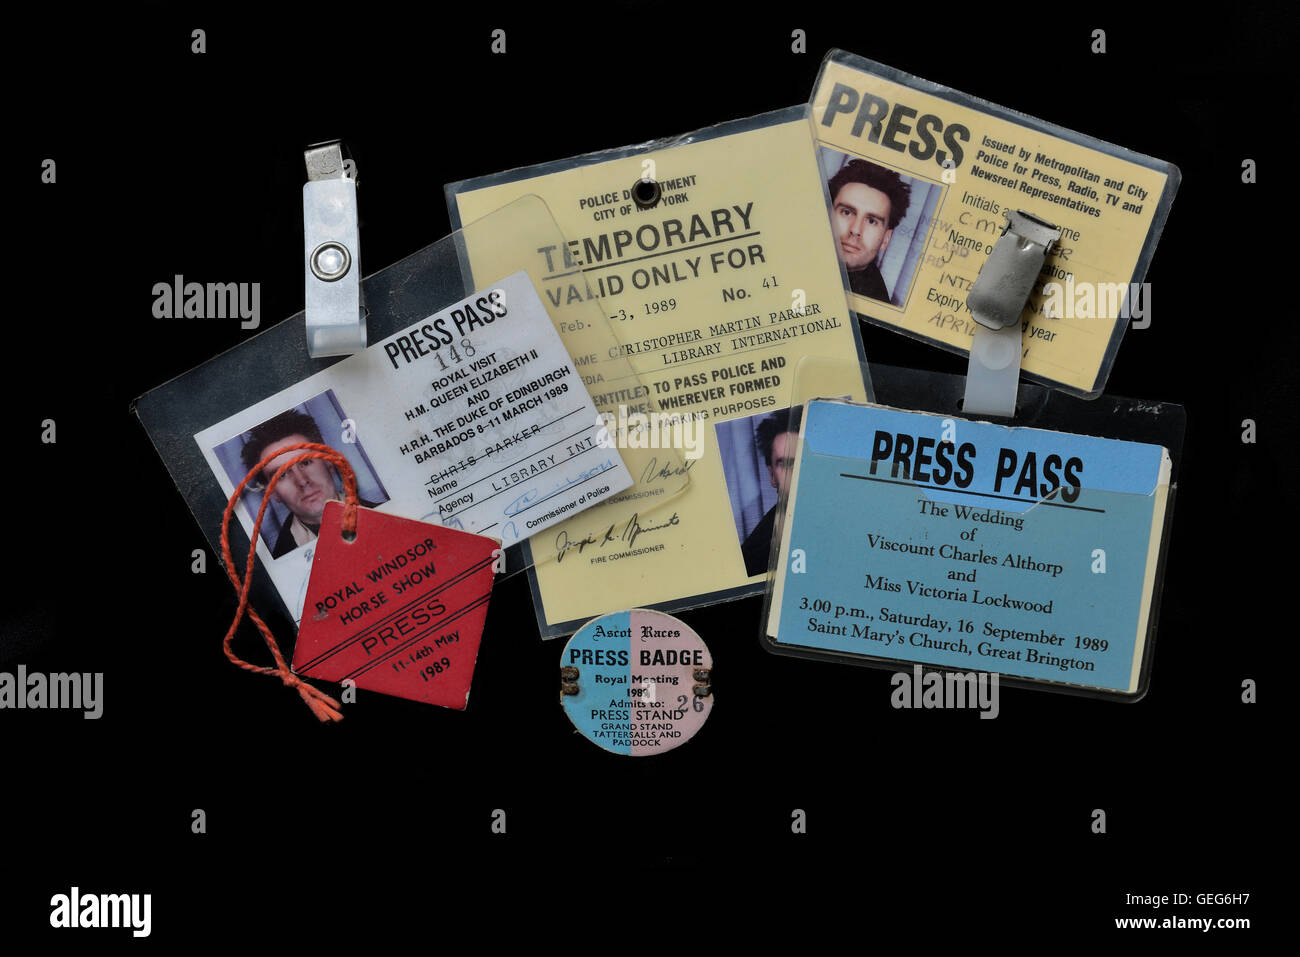 A selection of press I.D. passes from the 1980's - Stock Image